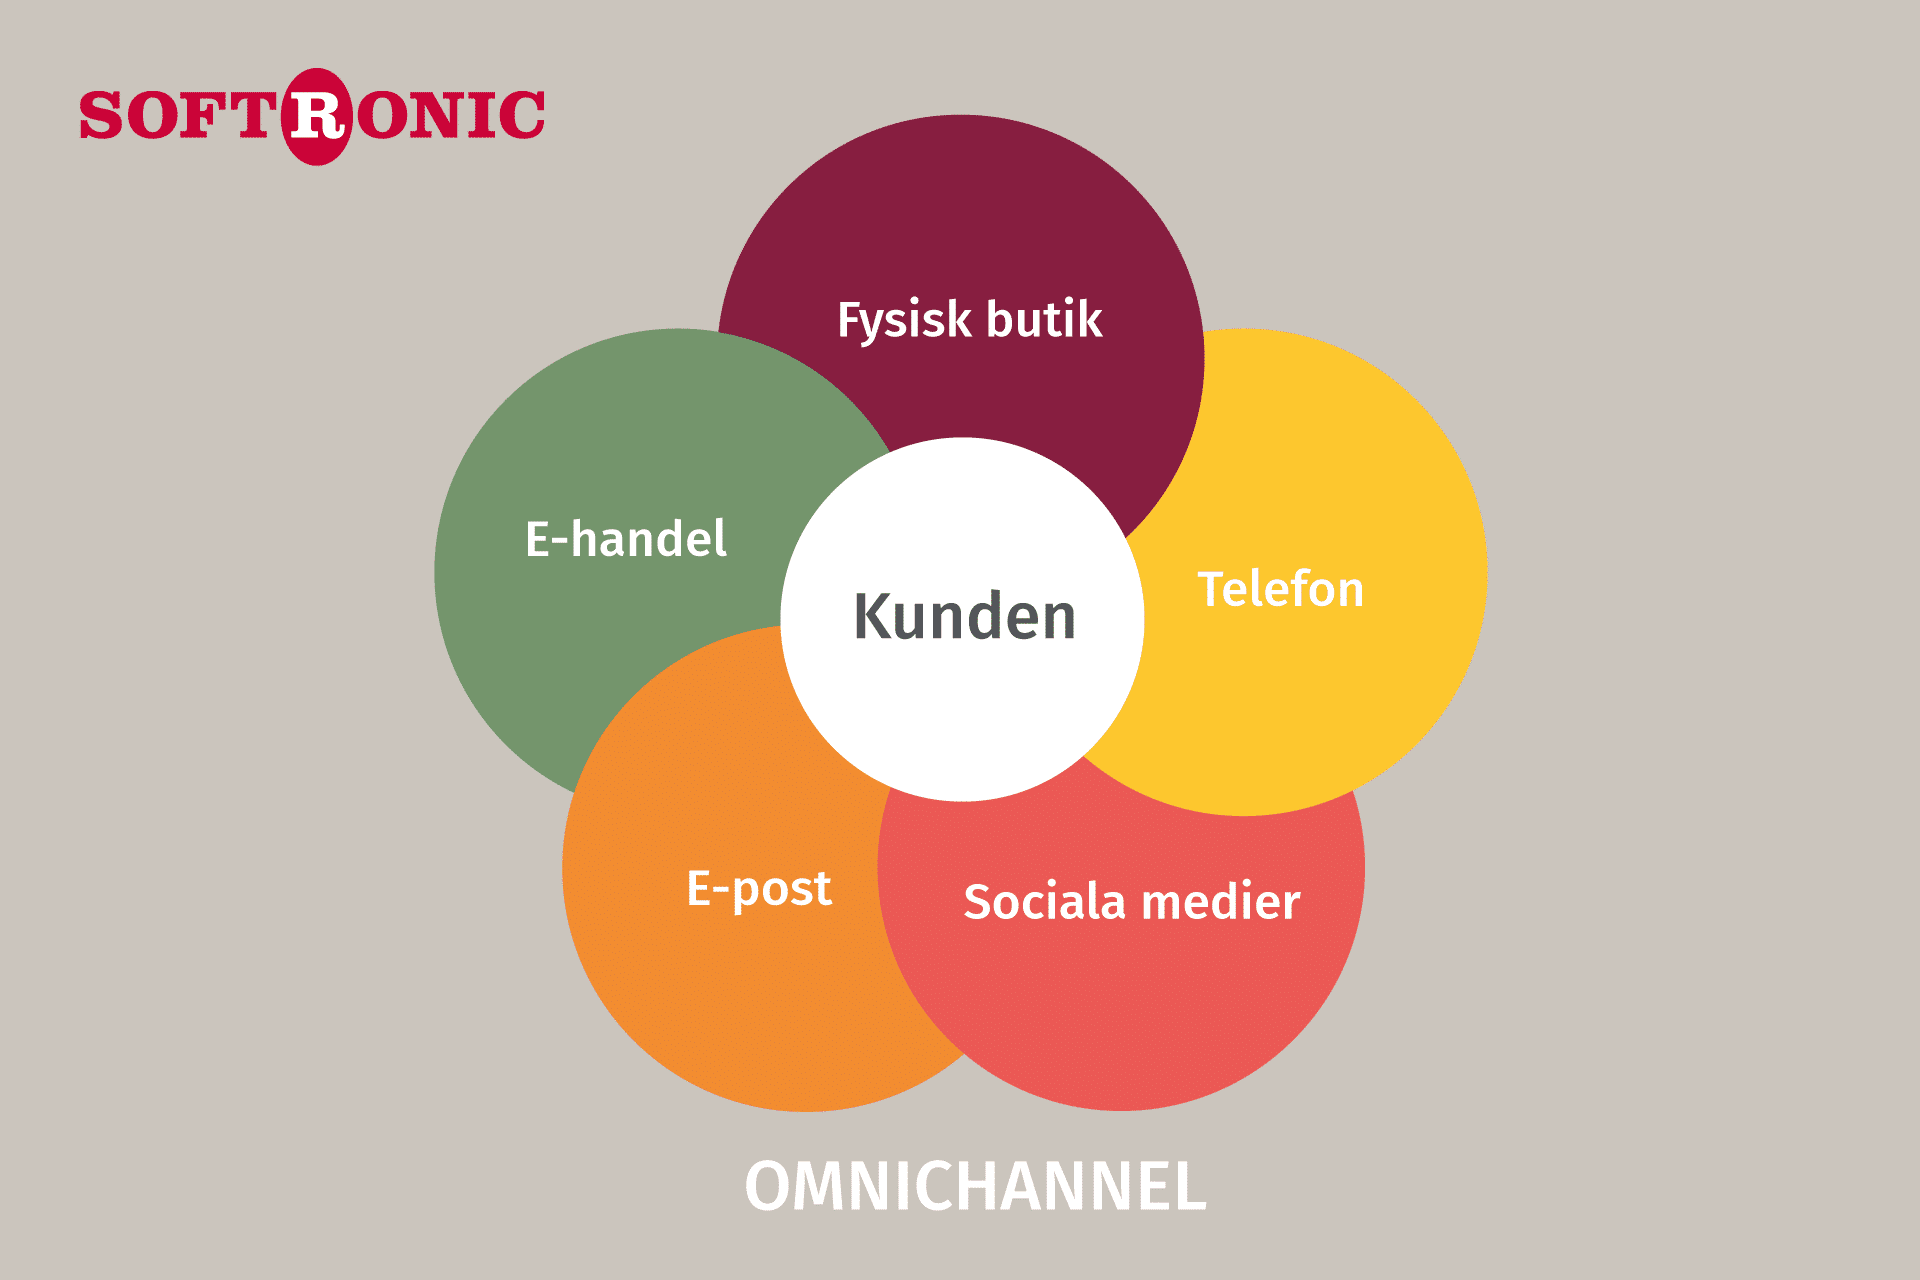 Omnichannel Softronic